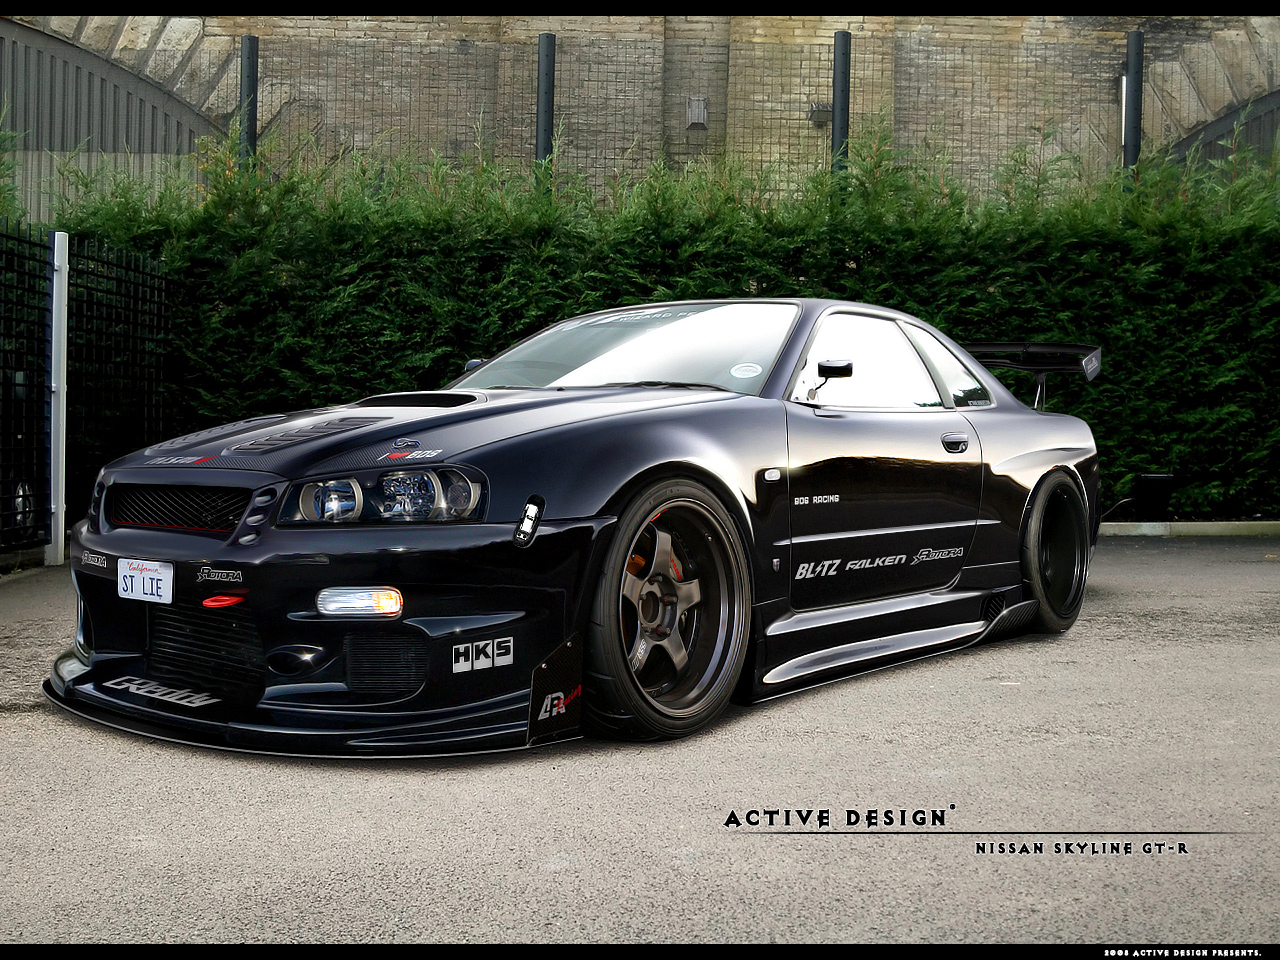 Nissan Skyline GT-R. View Download Wallpaper. 1280x960. Comments